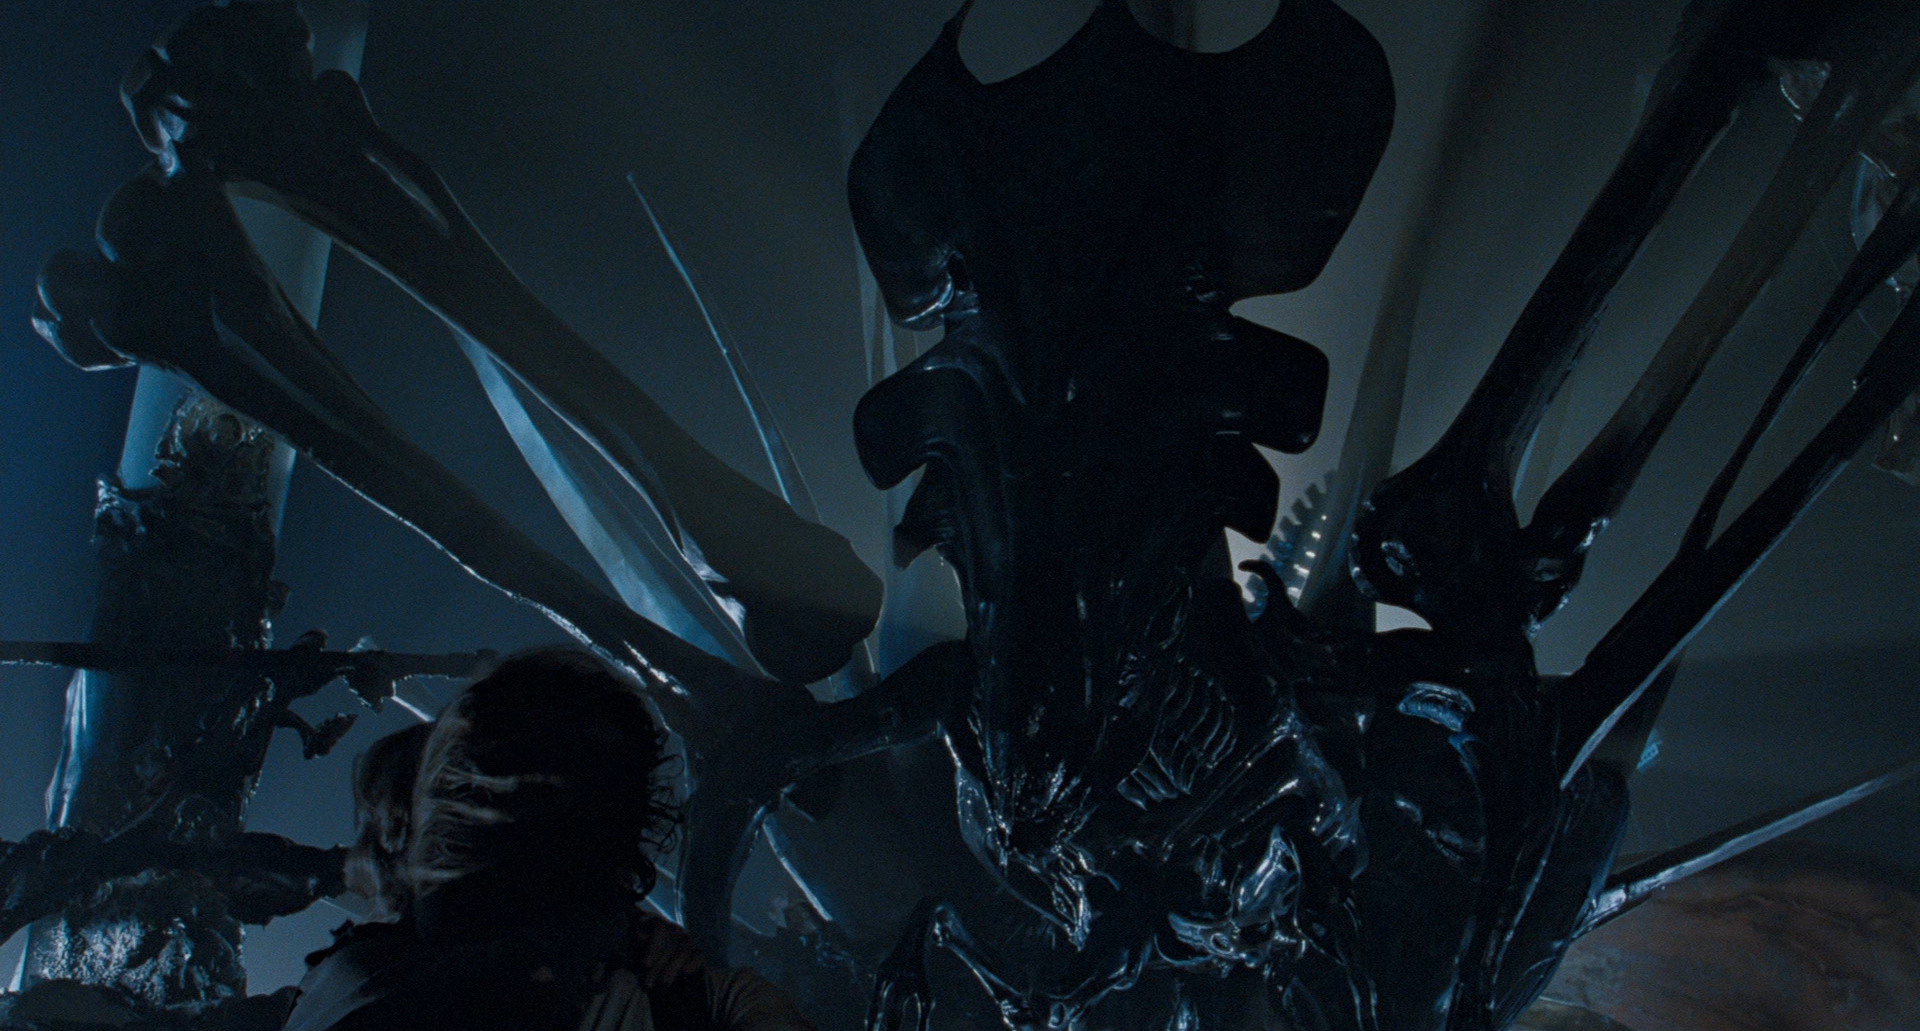 Alien': Every Stage in the Xenomorph's Gruesome Life Cycle ... on transformers home planet, luke skywalker's home planet, yoda's home planet, alien home planet, superman's home planet, krypton superman home planet, chewbacca's home planet, predator home planet,